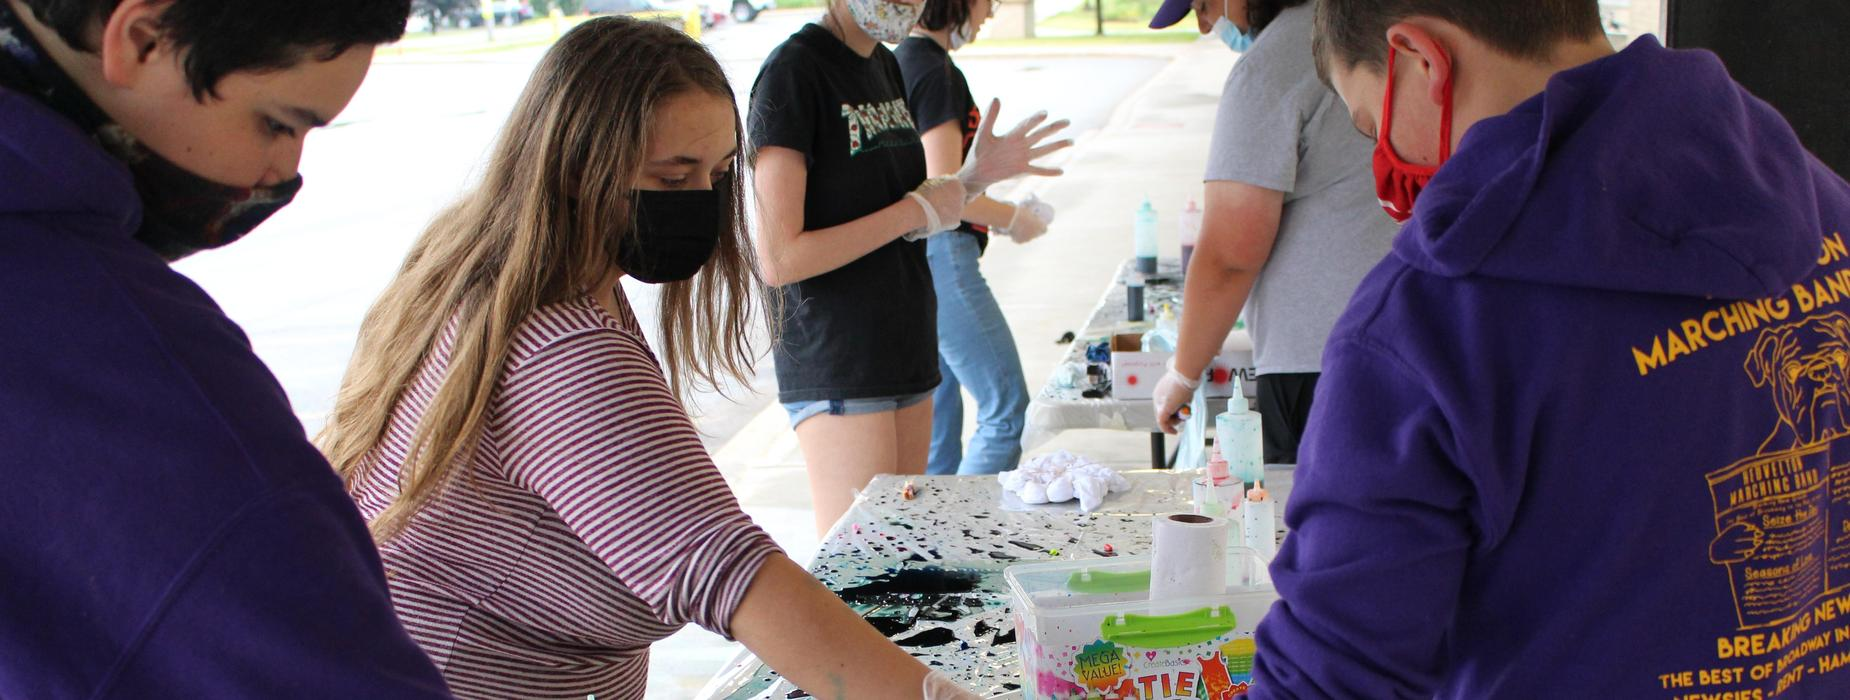 High school students tie dying shirts